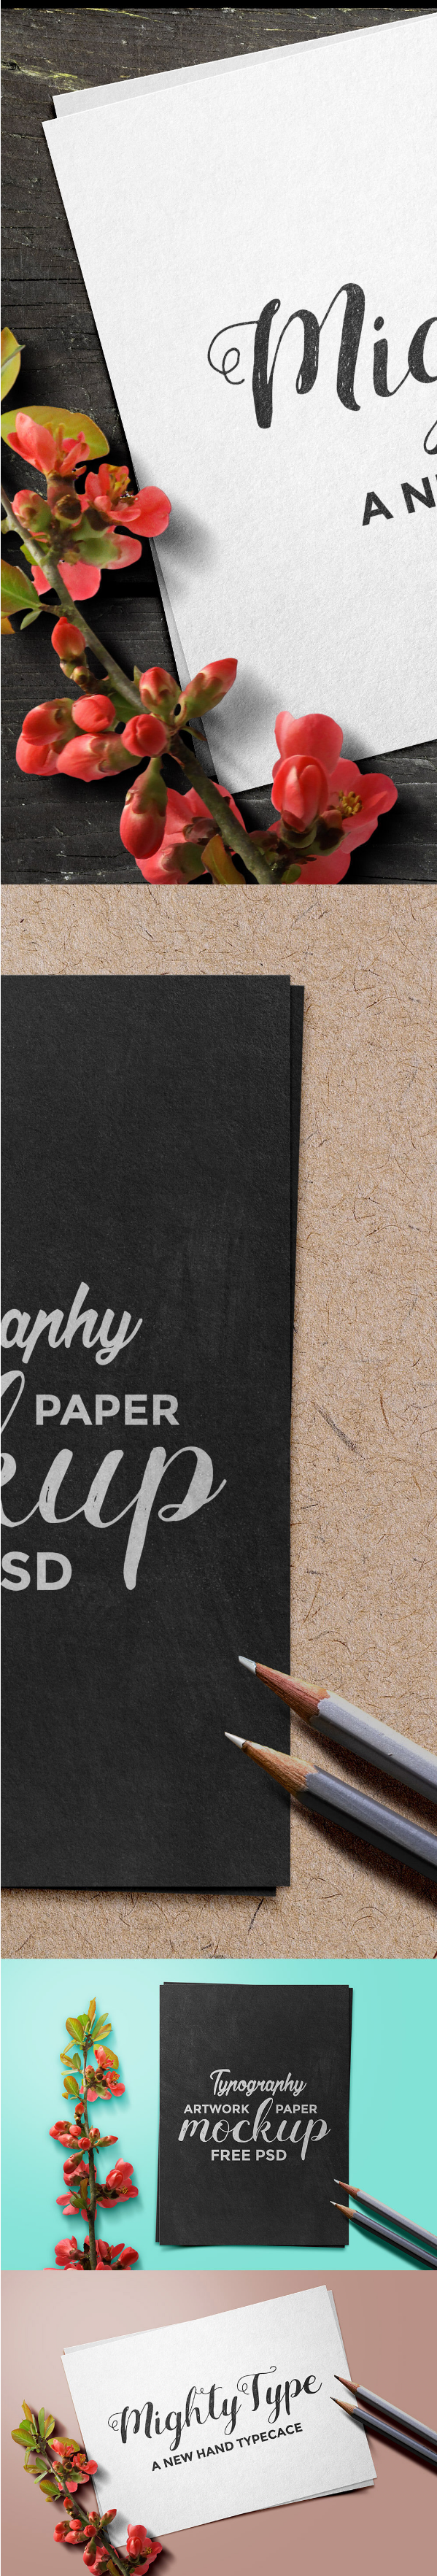 Typography Artwork Paper PSD Mockup Template